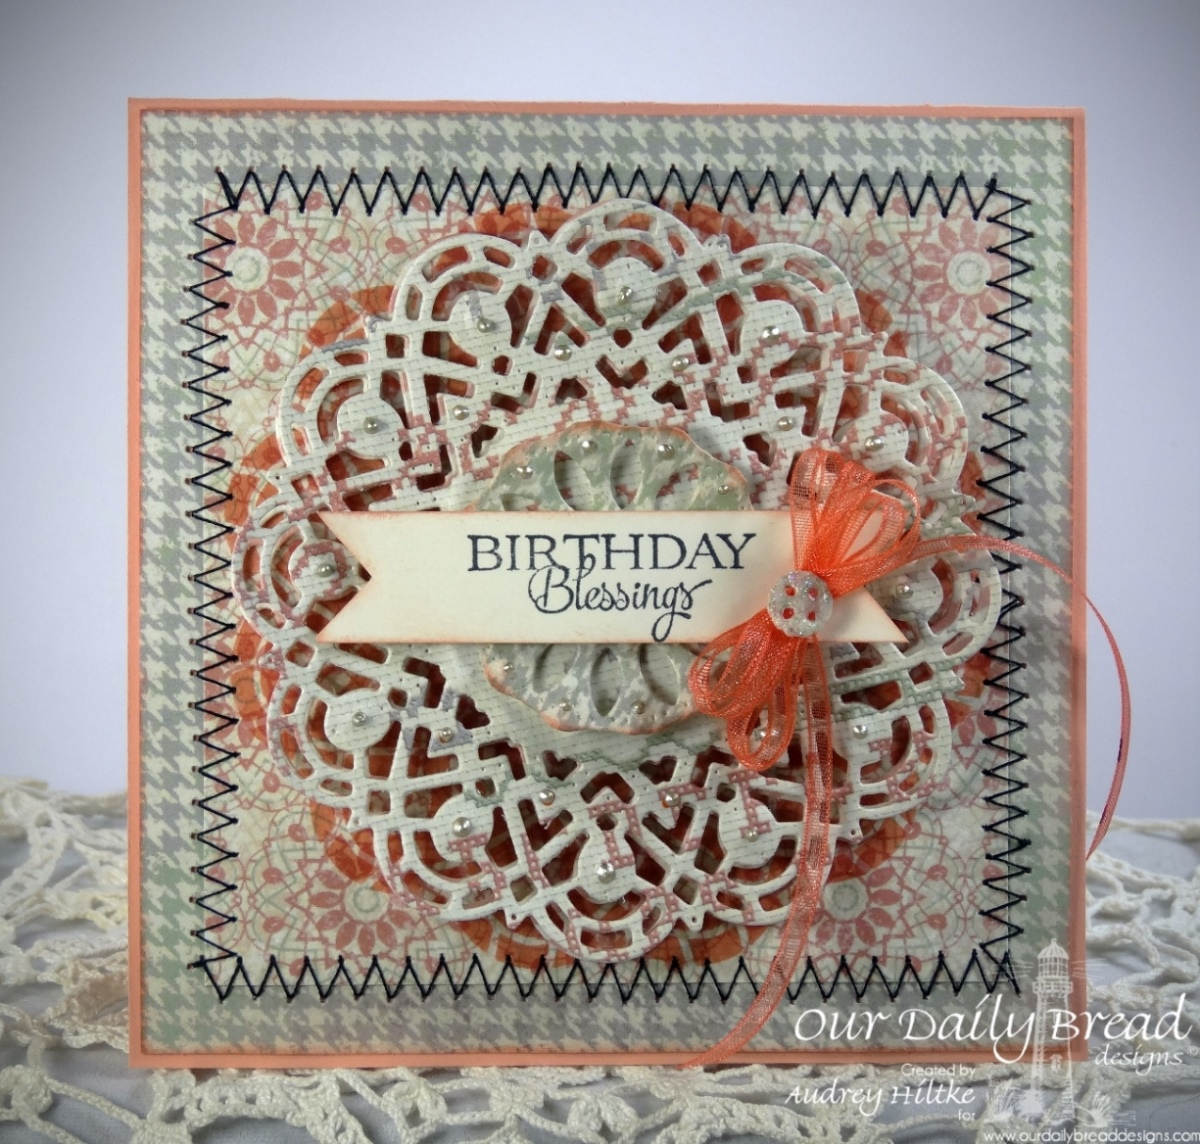 Stamps - Our Daily Bread Designs Birthday Doily, ODBD Custom Doily Die, ODBD Soulful Stitches Paper Collection